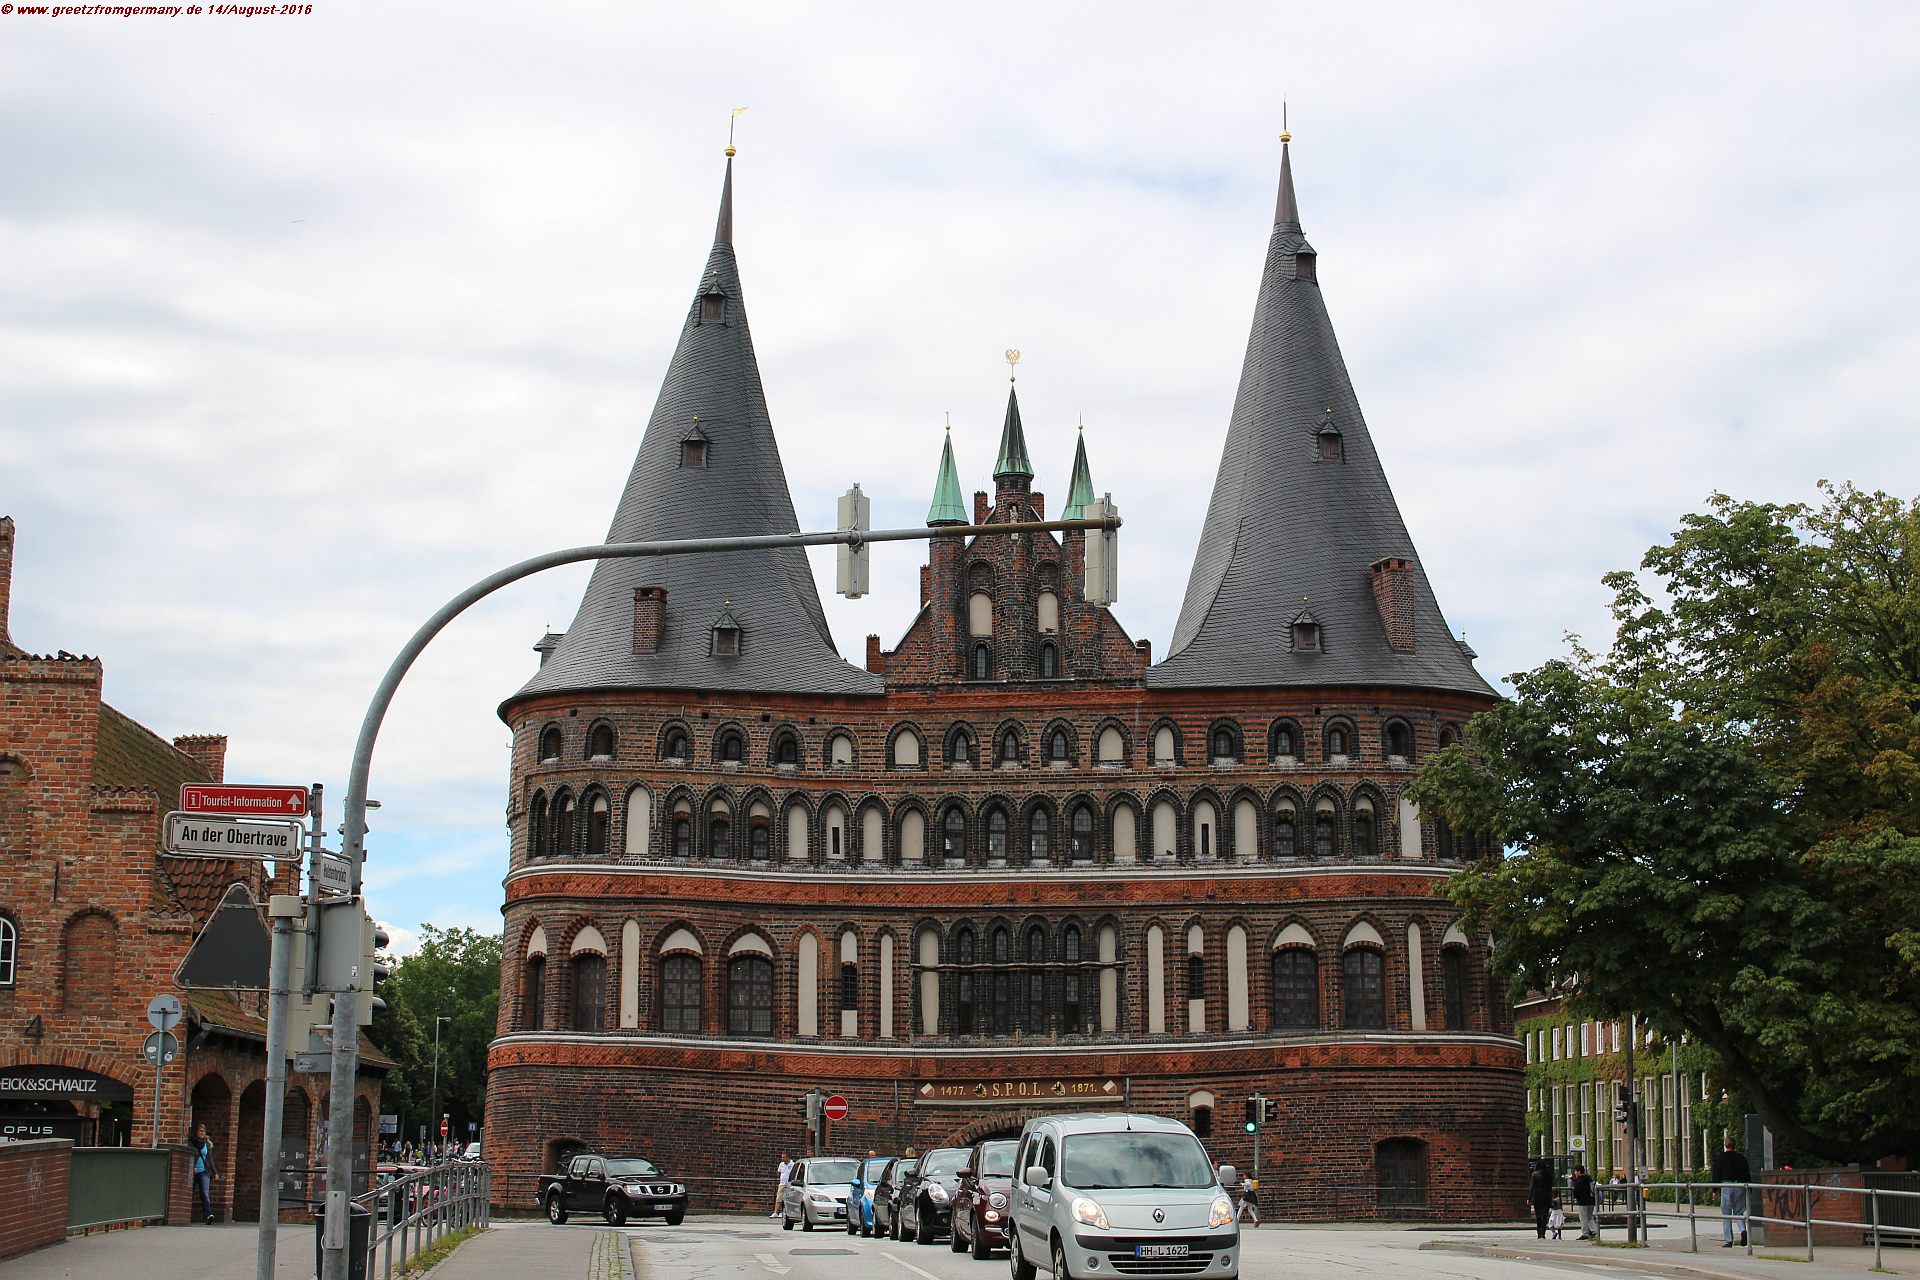 20160814_Holstentor Lübeck